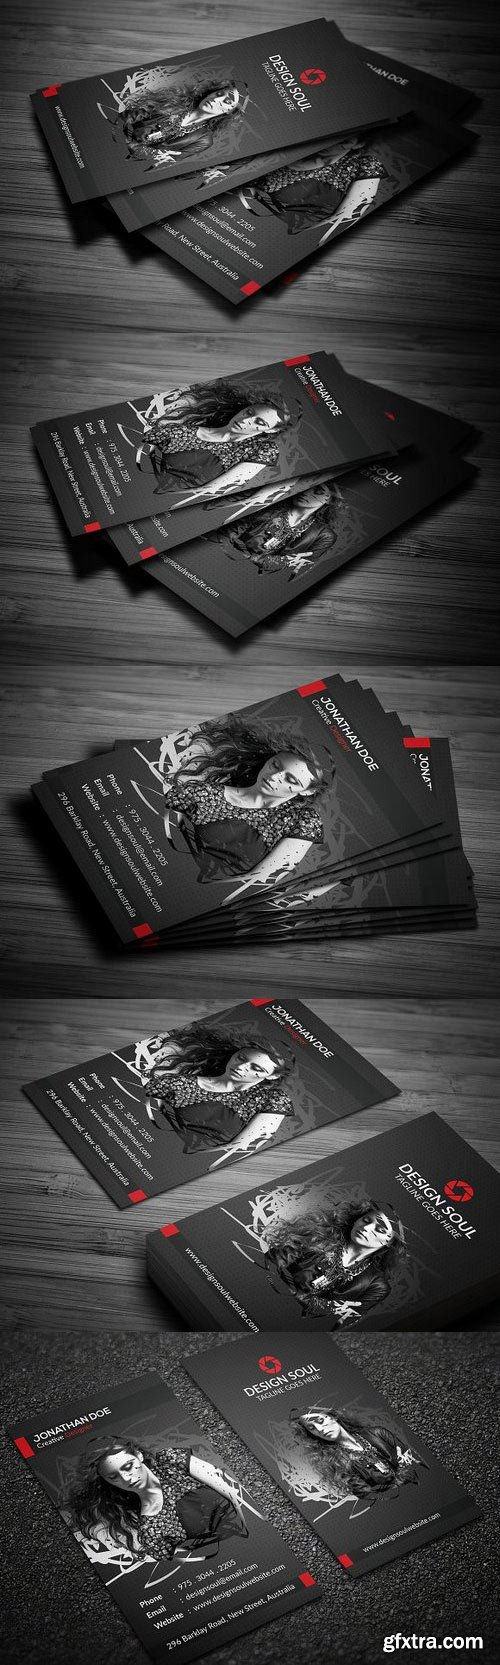 CM 698609 - Photography Business Card